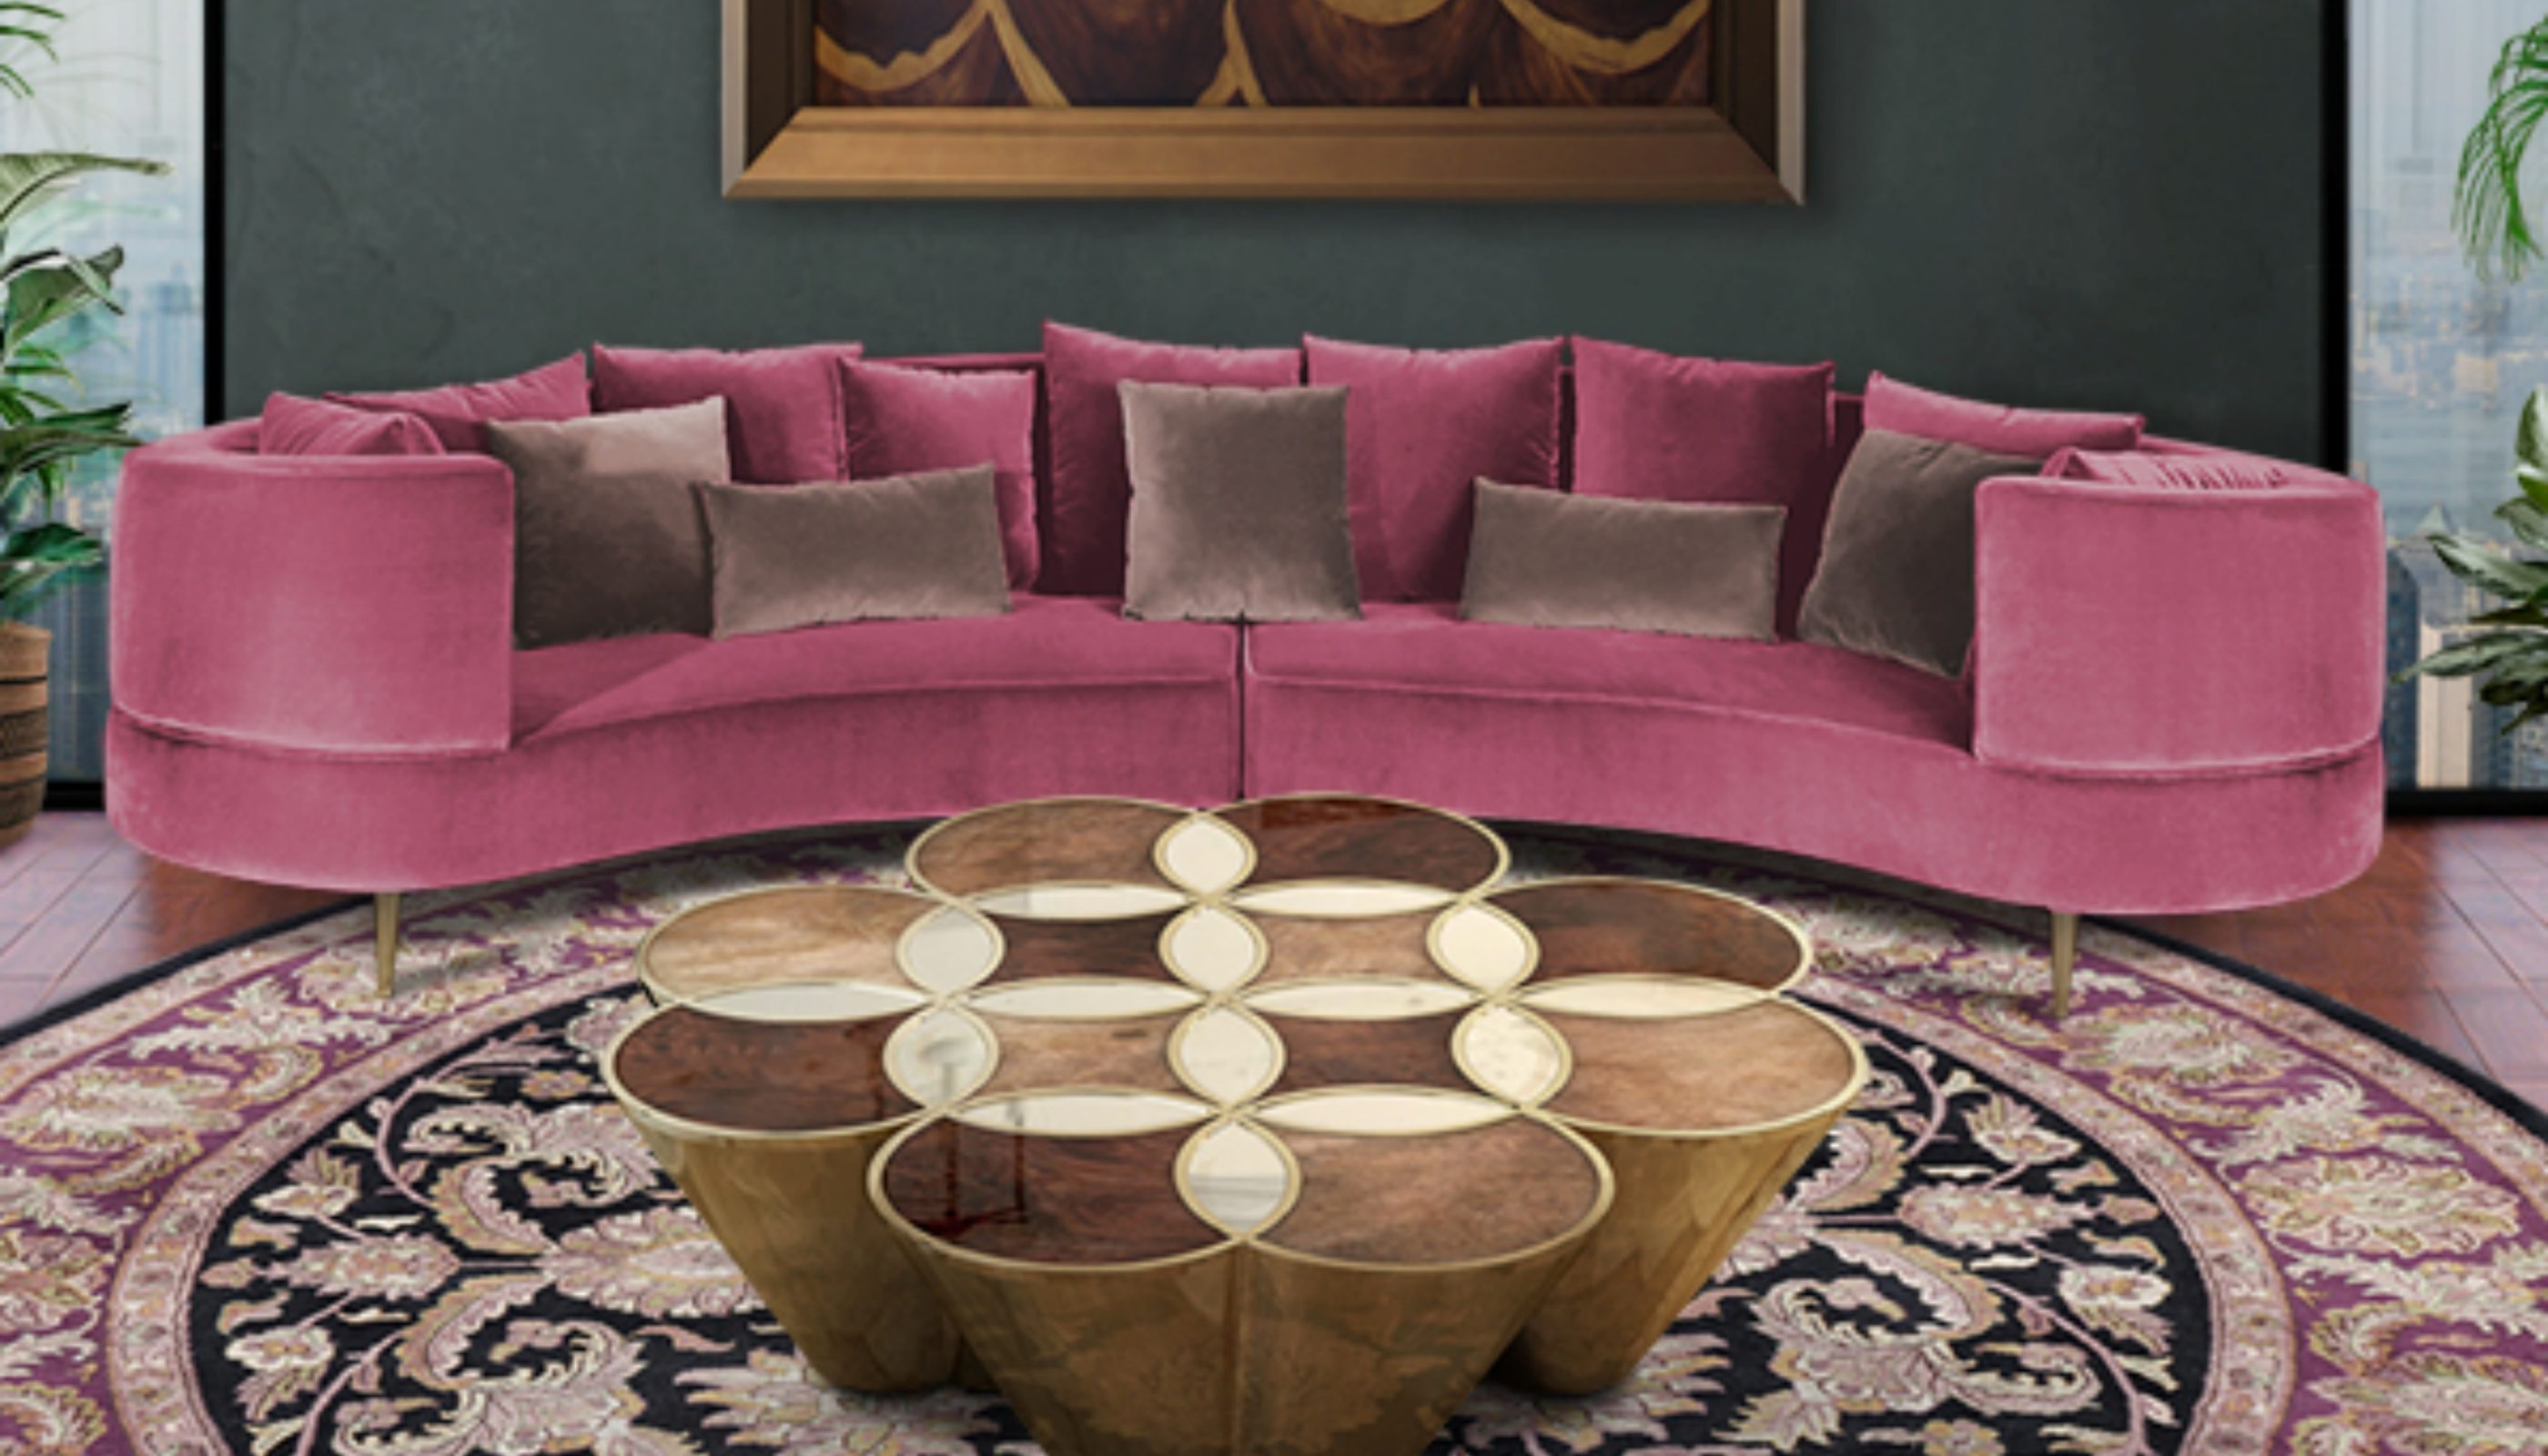 Curved Sofas You'll Love - Margret Sofa